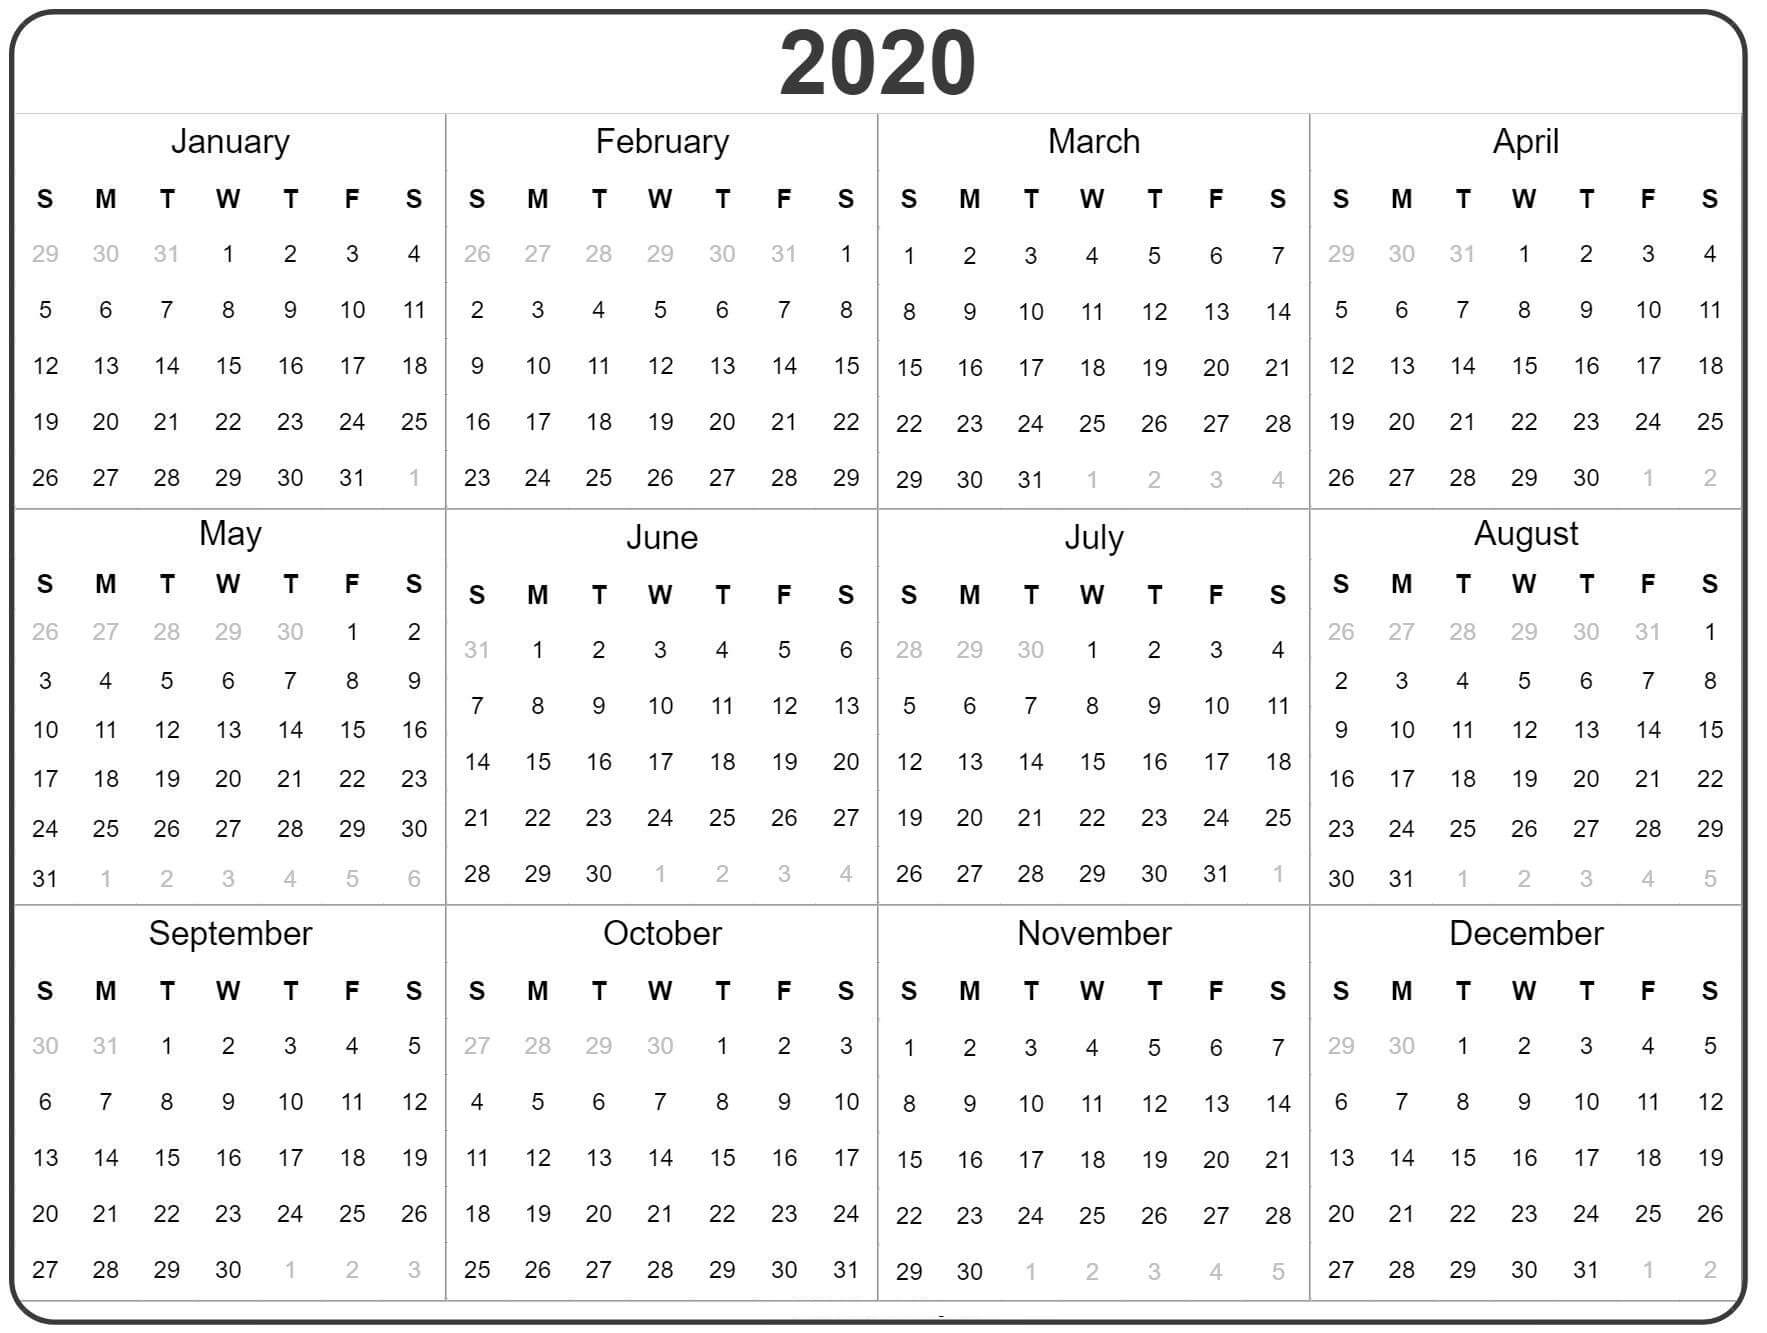 Free Yearly Calendar 2020 With Notes - 2019 Calendars For for 2020 At A Glance Calendar